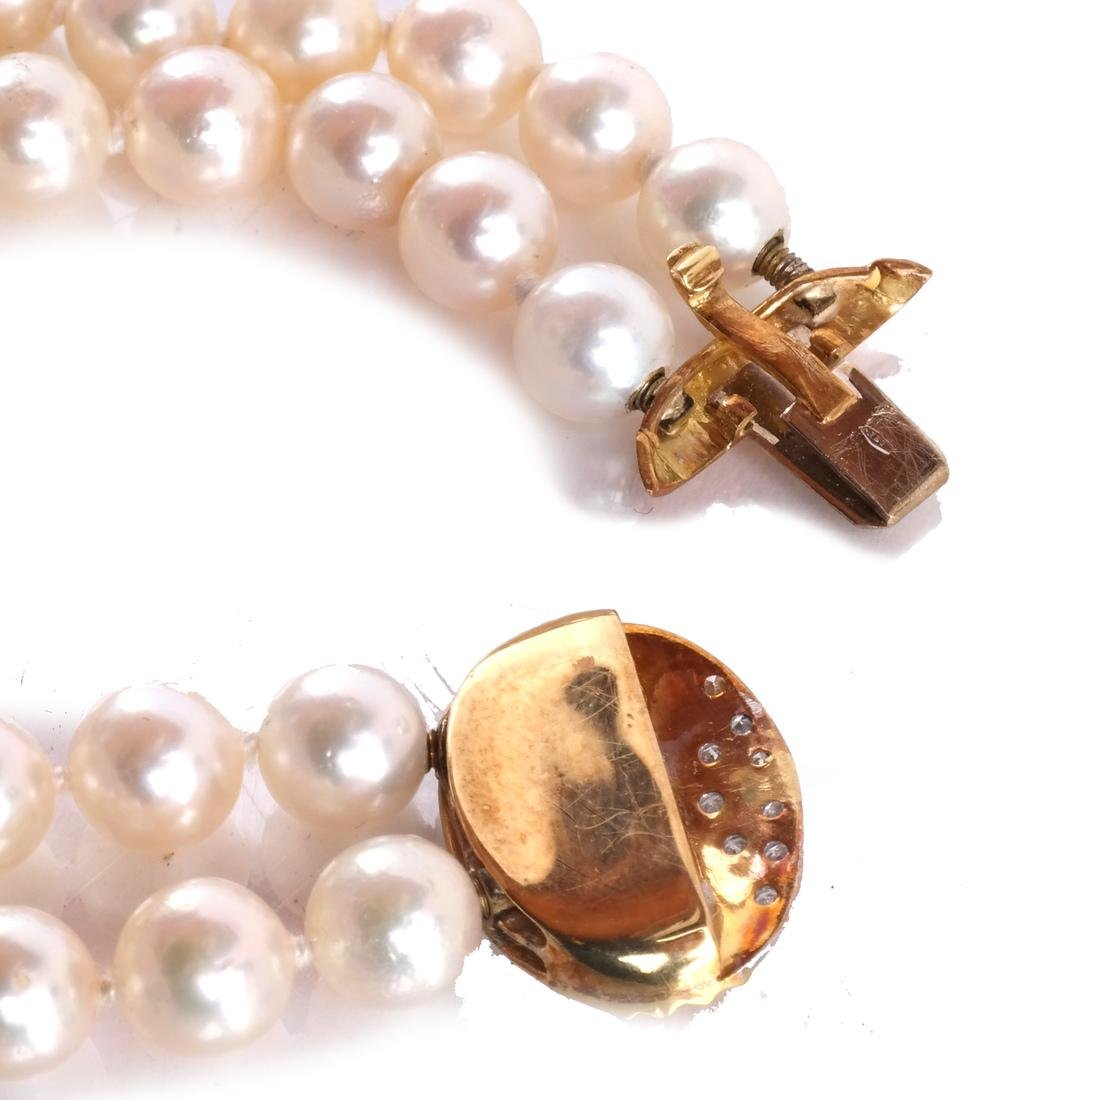 Two-Strand Pearl Necklace, 18k Clasp - 5